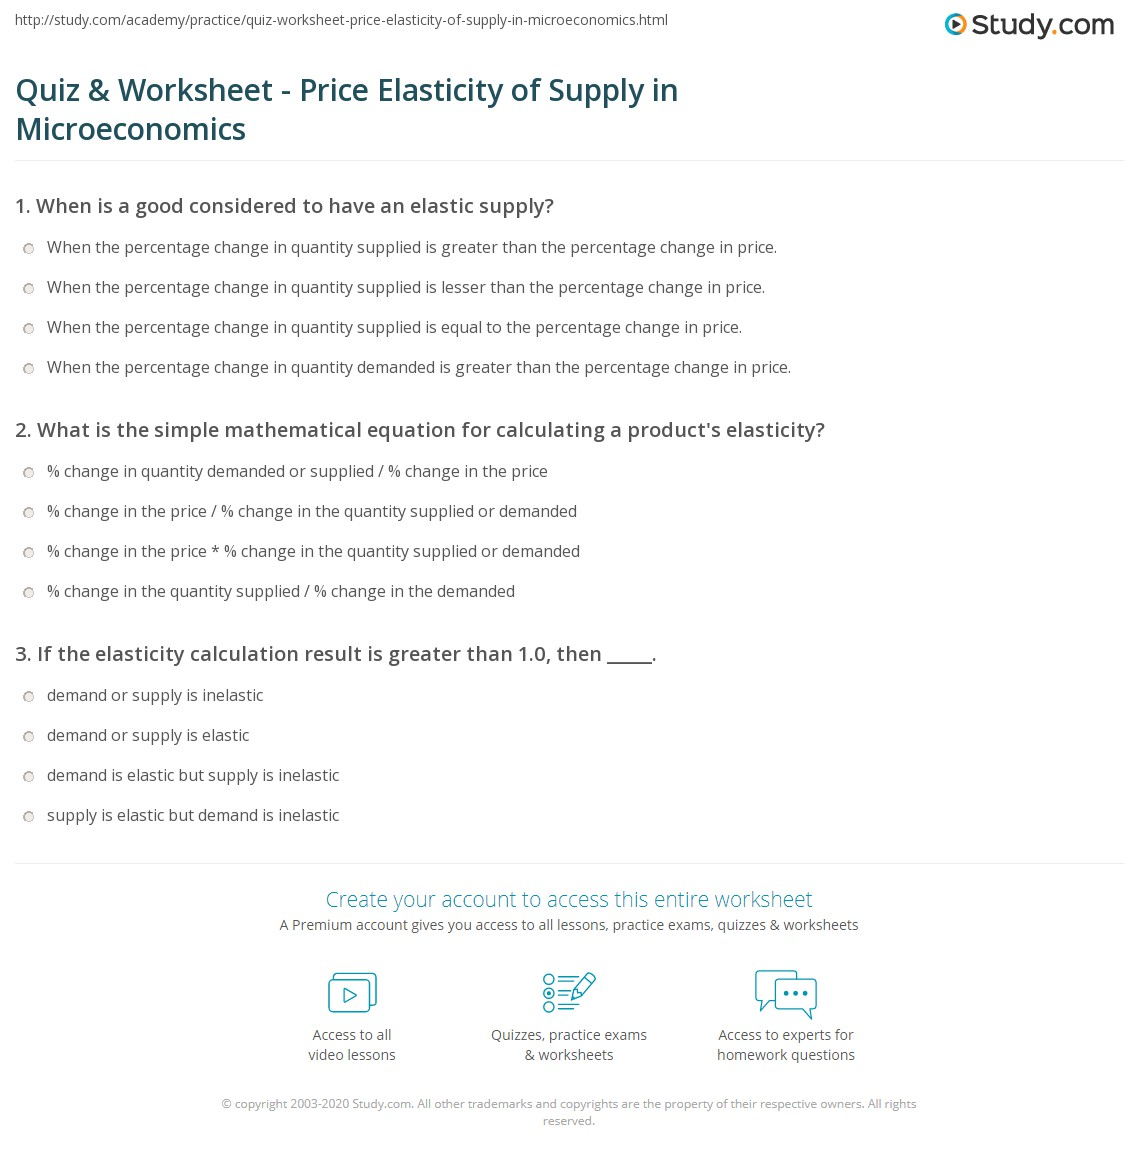 Print Price Elasticity Of Supply In Microeconomics Worksheet